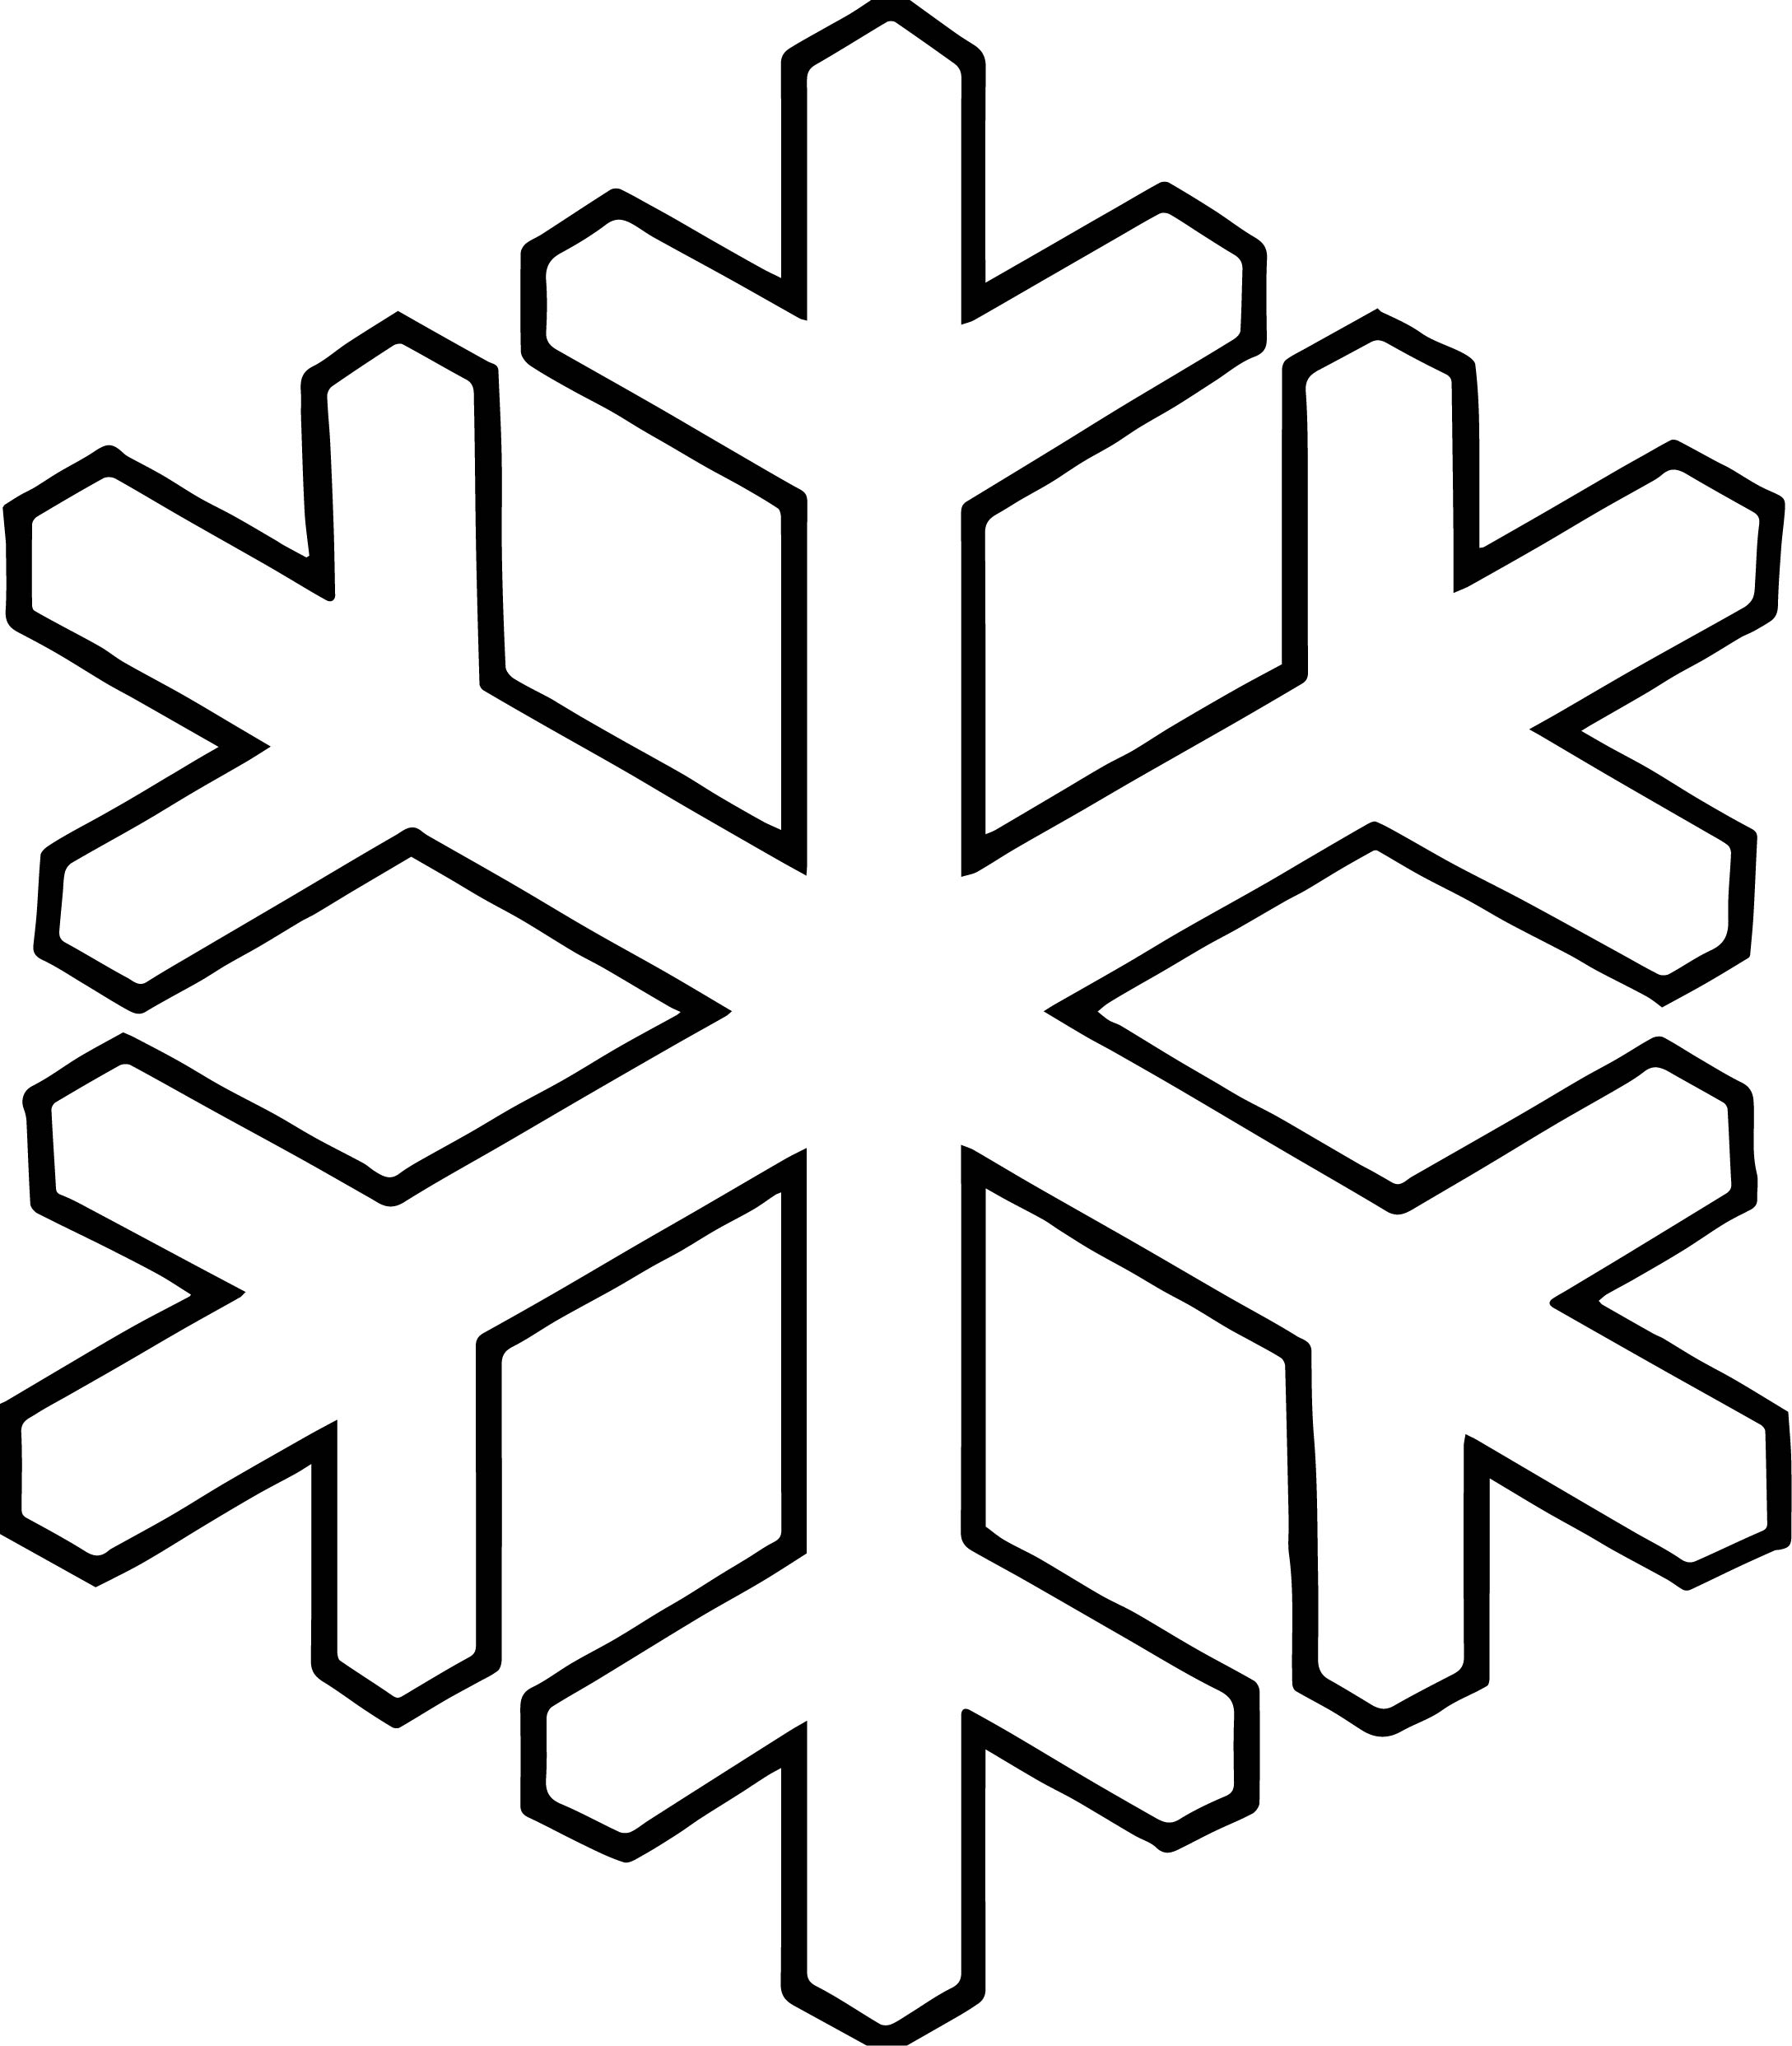 bold snowflake coloring page - Snowflake Coloring Page